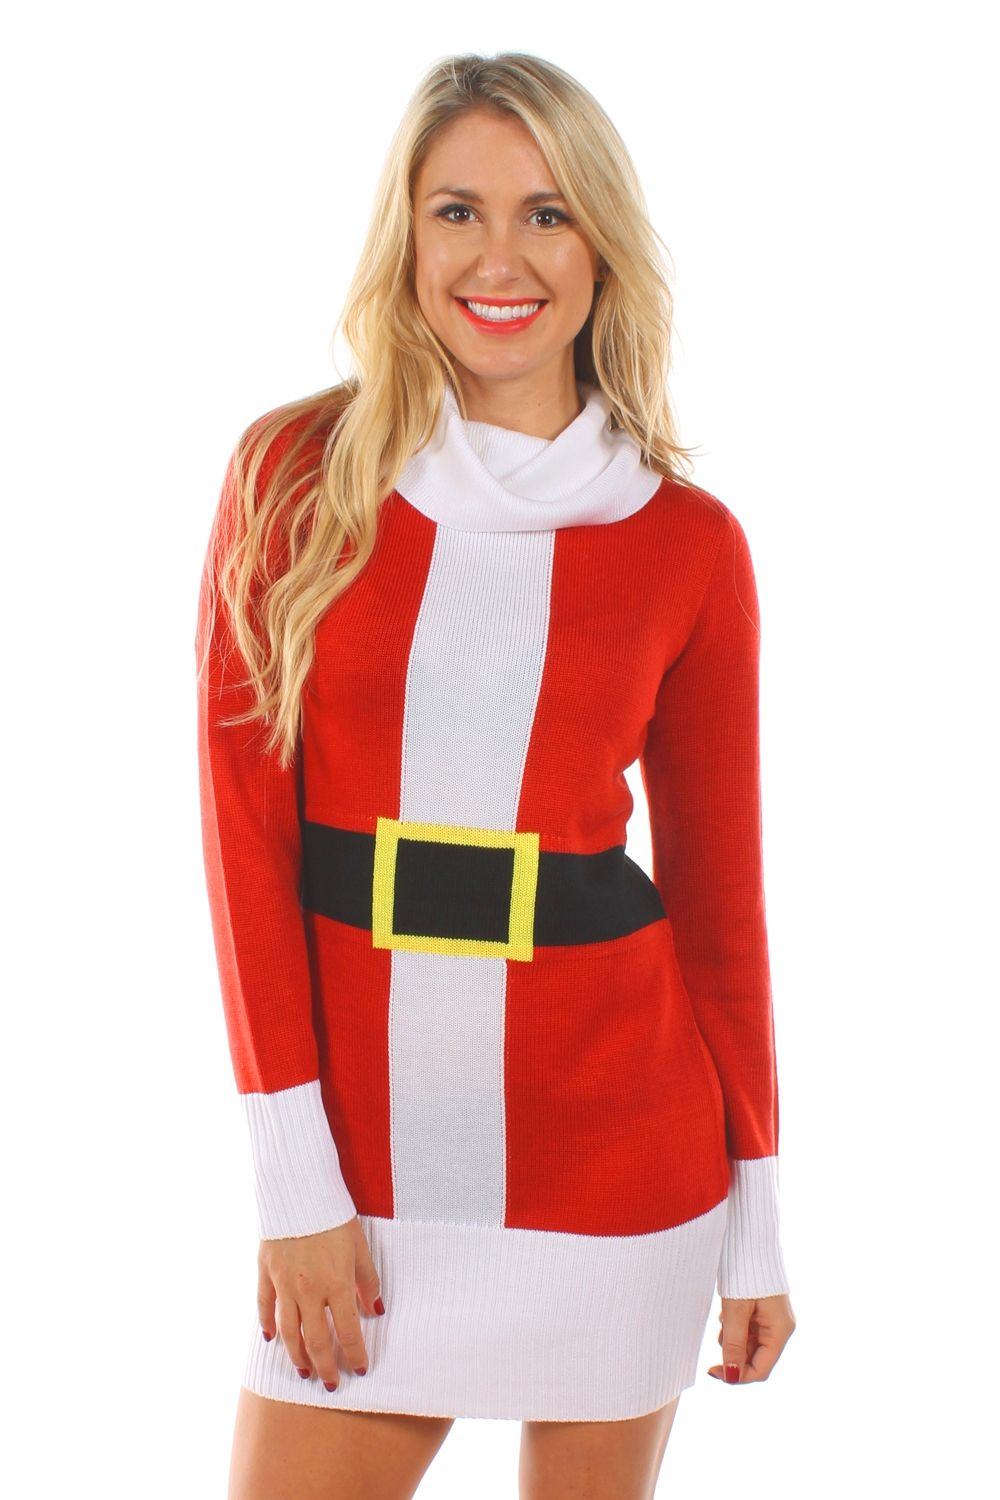 a1bea54817a00 It's not fair that men always get to play Santa. This Christmas sweater  dress levels the playing field, giving the ladies a chance to shine!